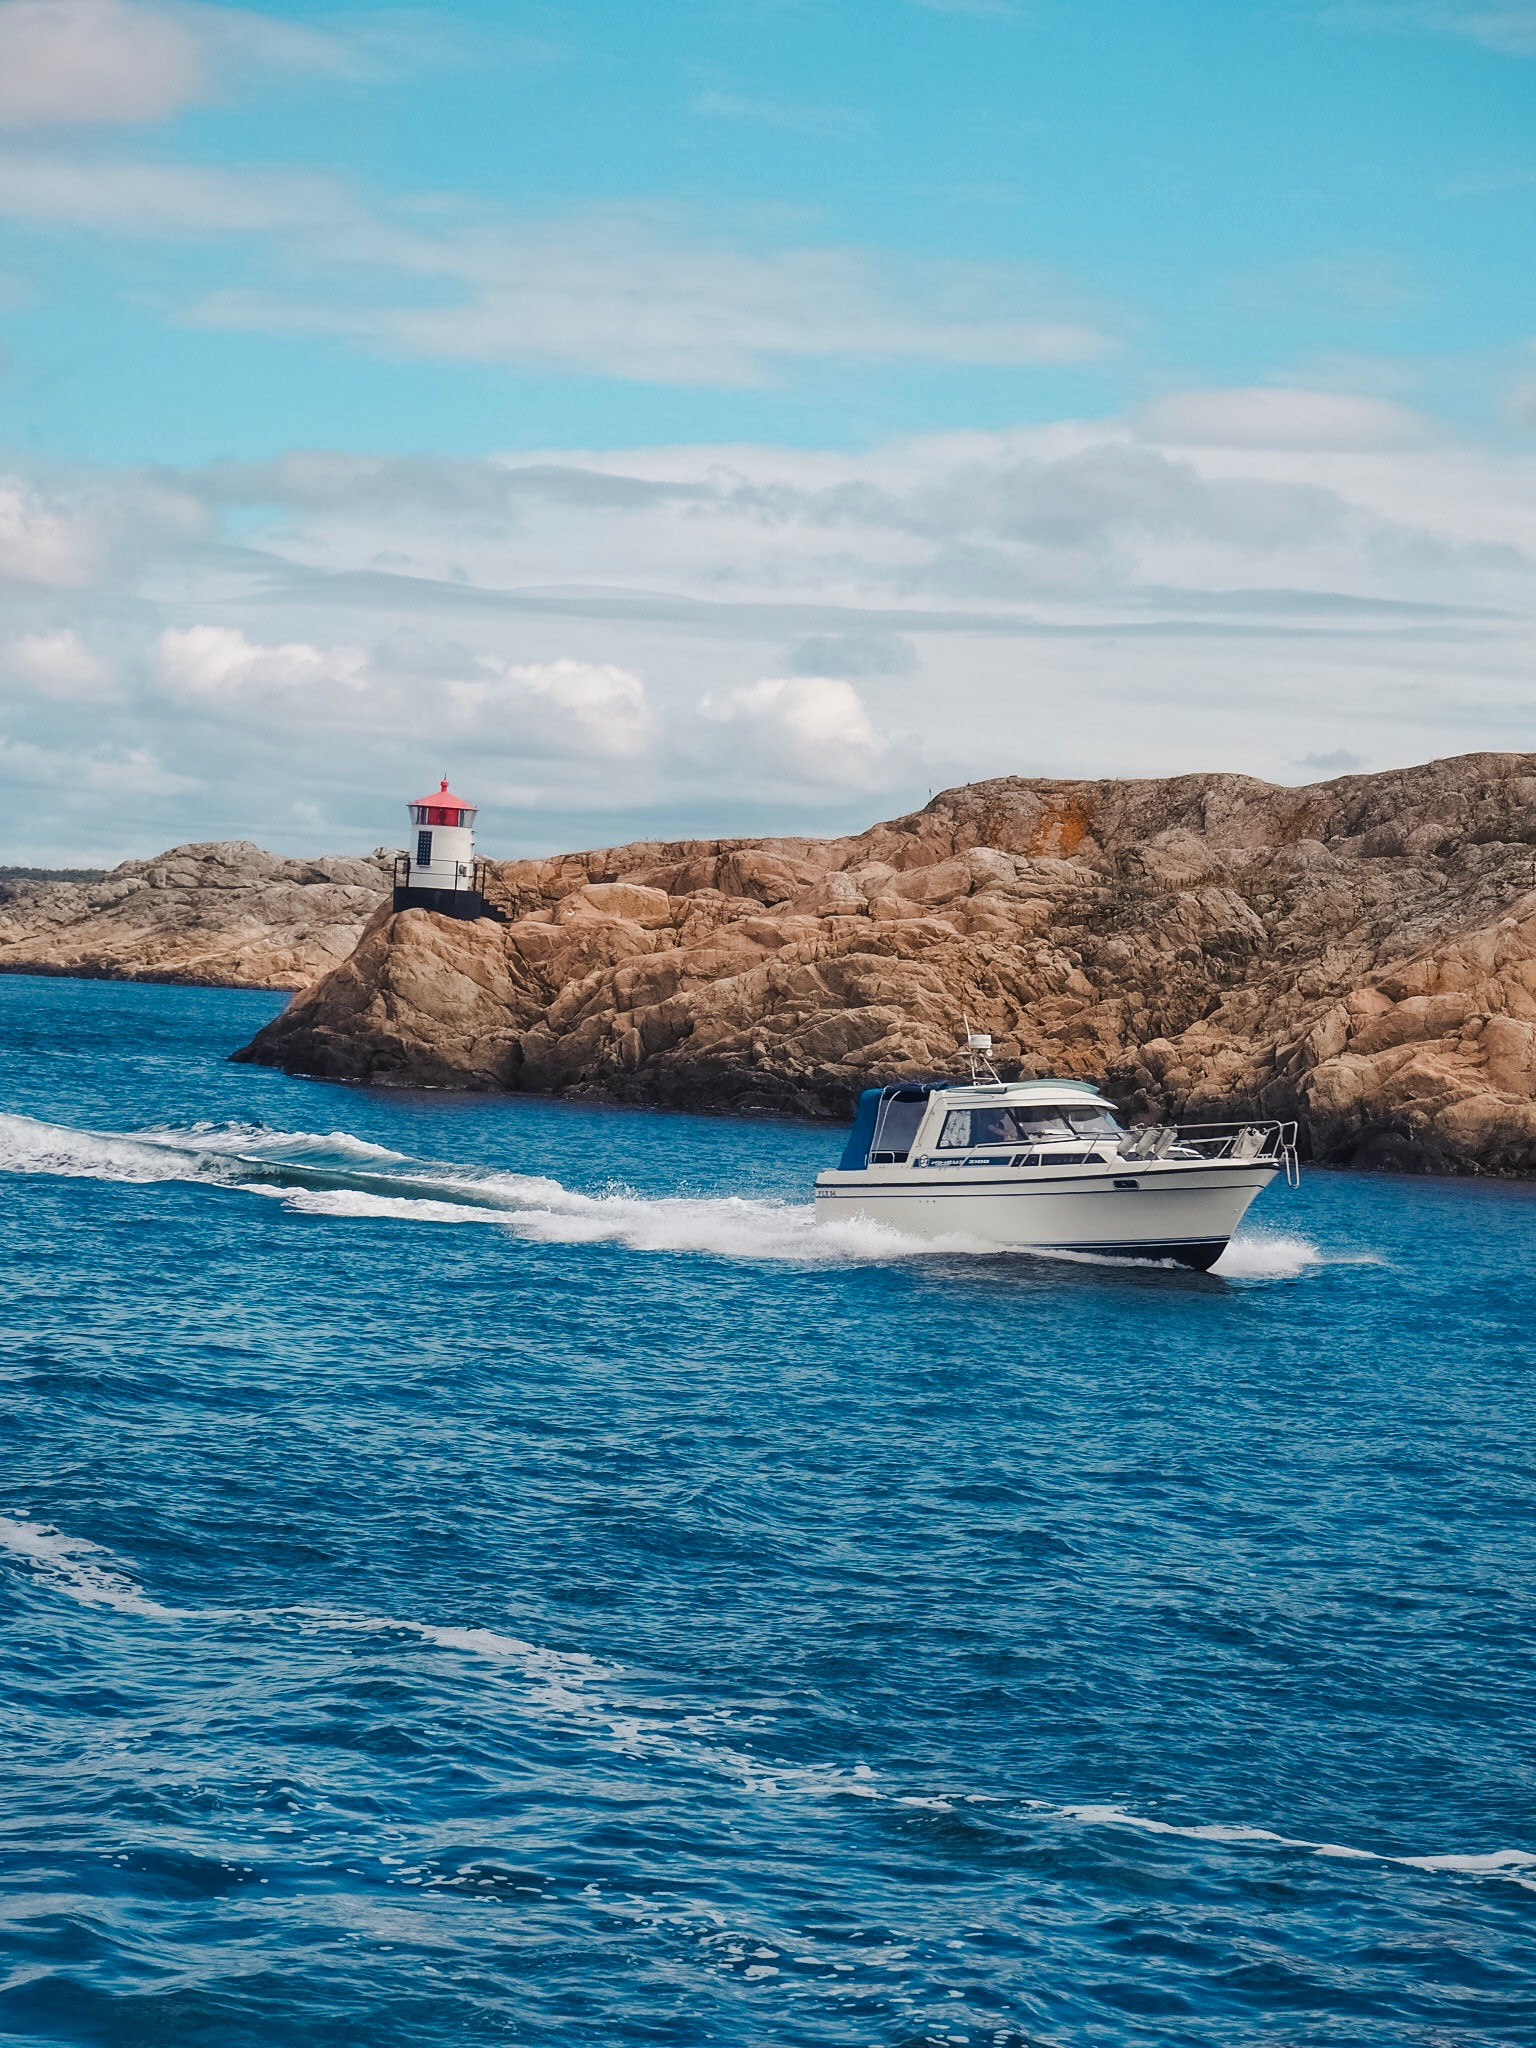 Things to do in things to see in Bohuslän Archipelago